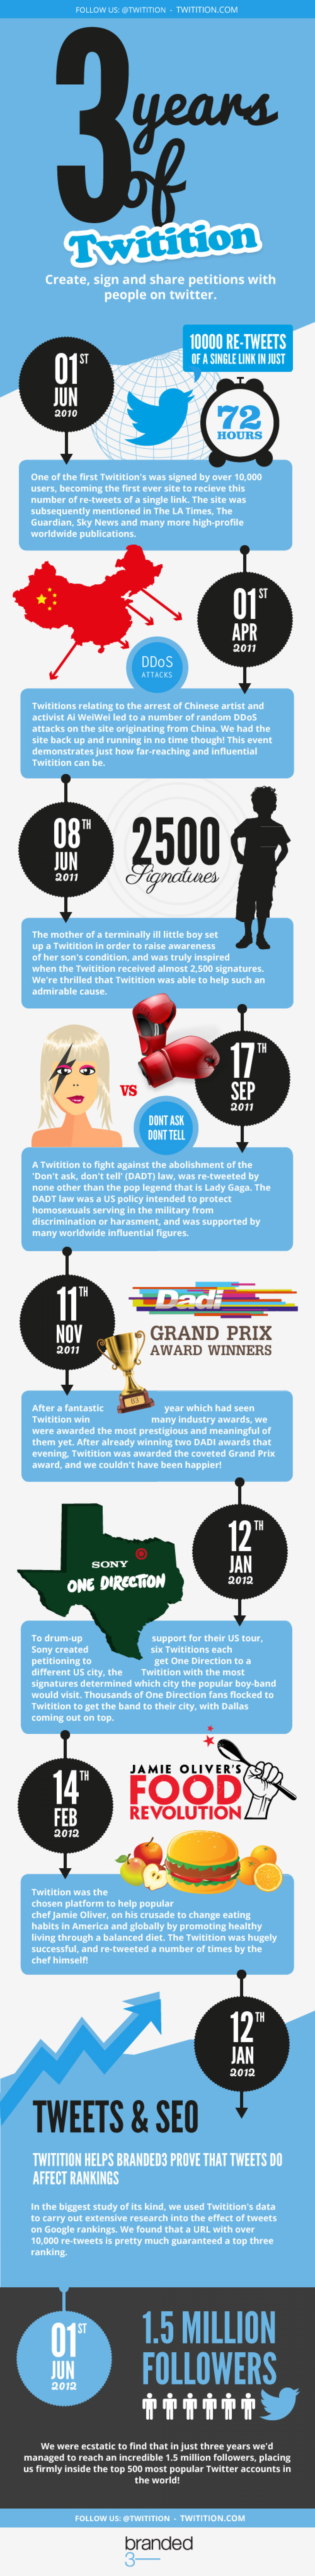 Three Years of Twitition Infographic